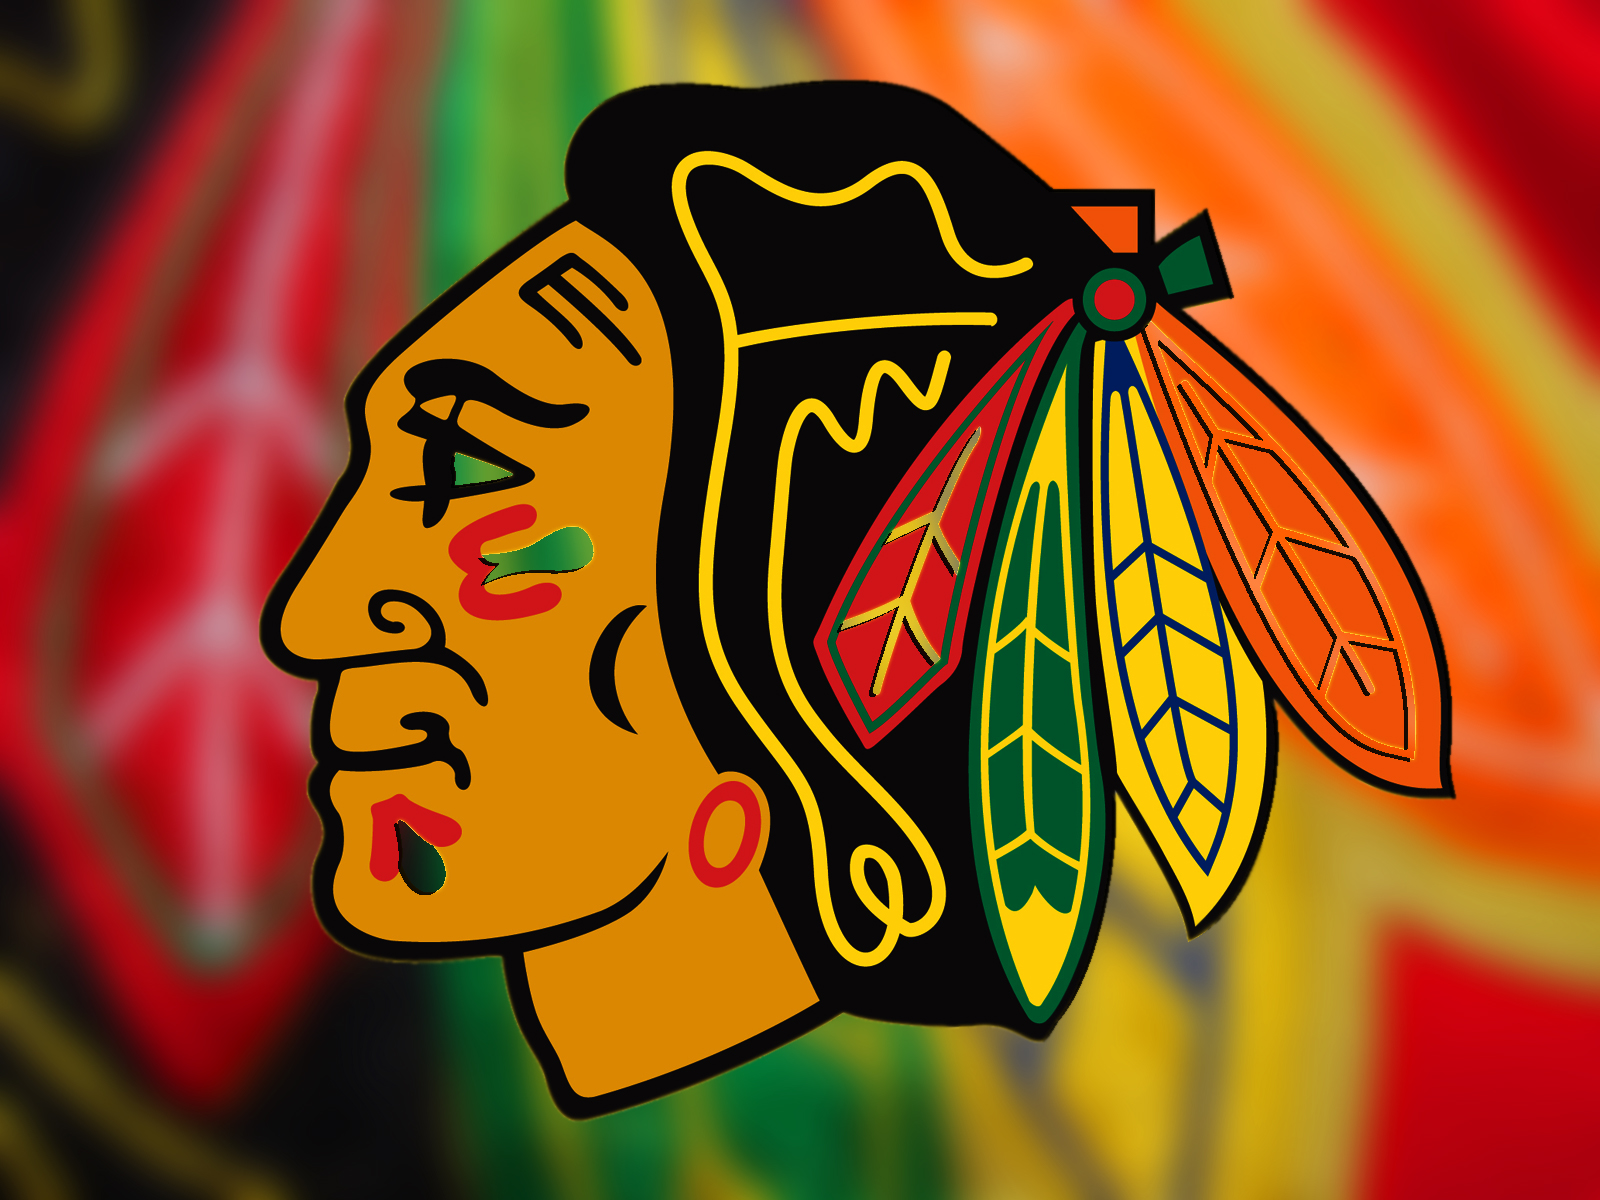 hd wallpapers blackhawks hd wallpapers blackhawks hd wallpapers 1600x1200